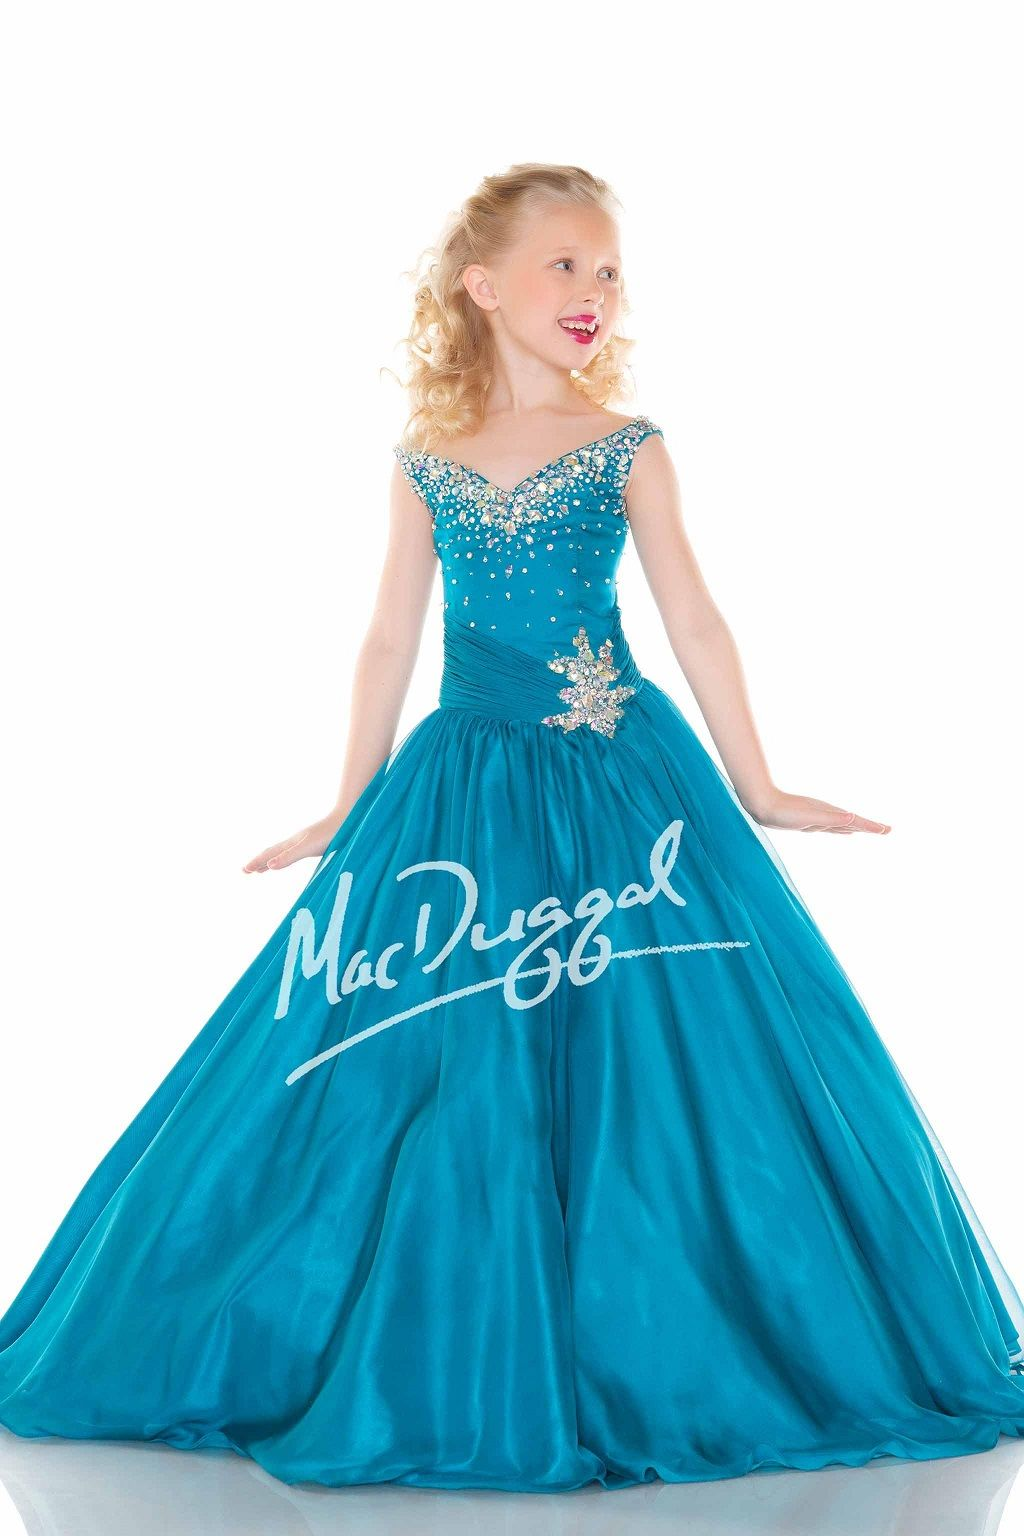 Style s from sugar by mac duggal is so adorable the beadwork